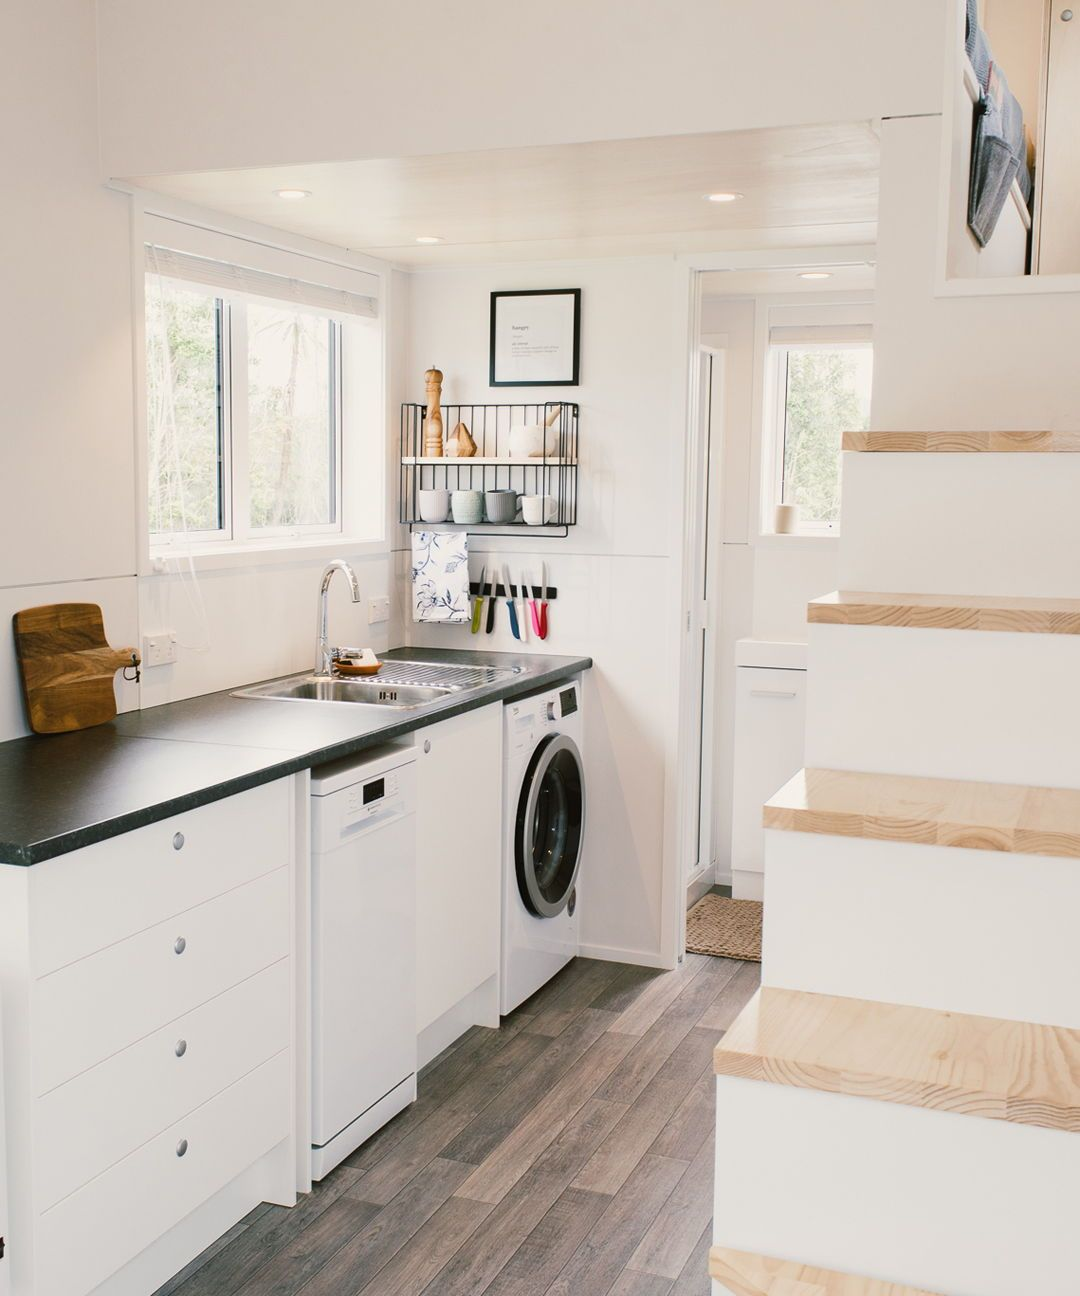 Washing Machine In Kitchen Design: Archer Tiny House By Build Tiny